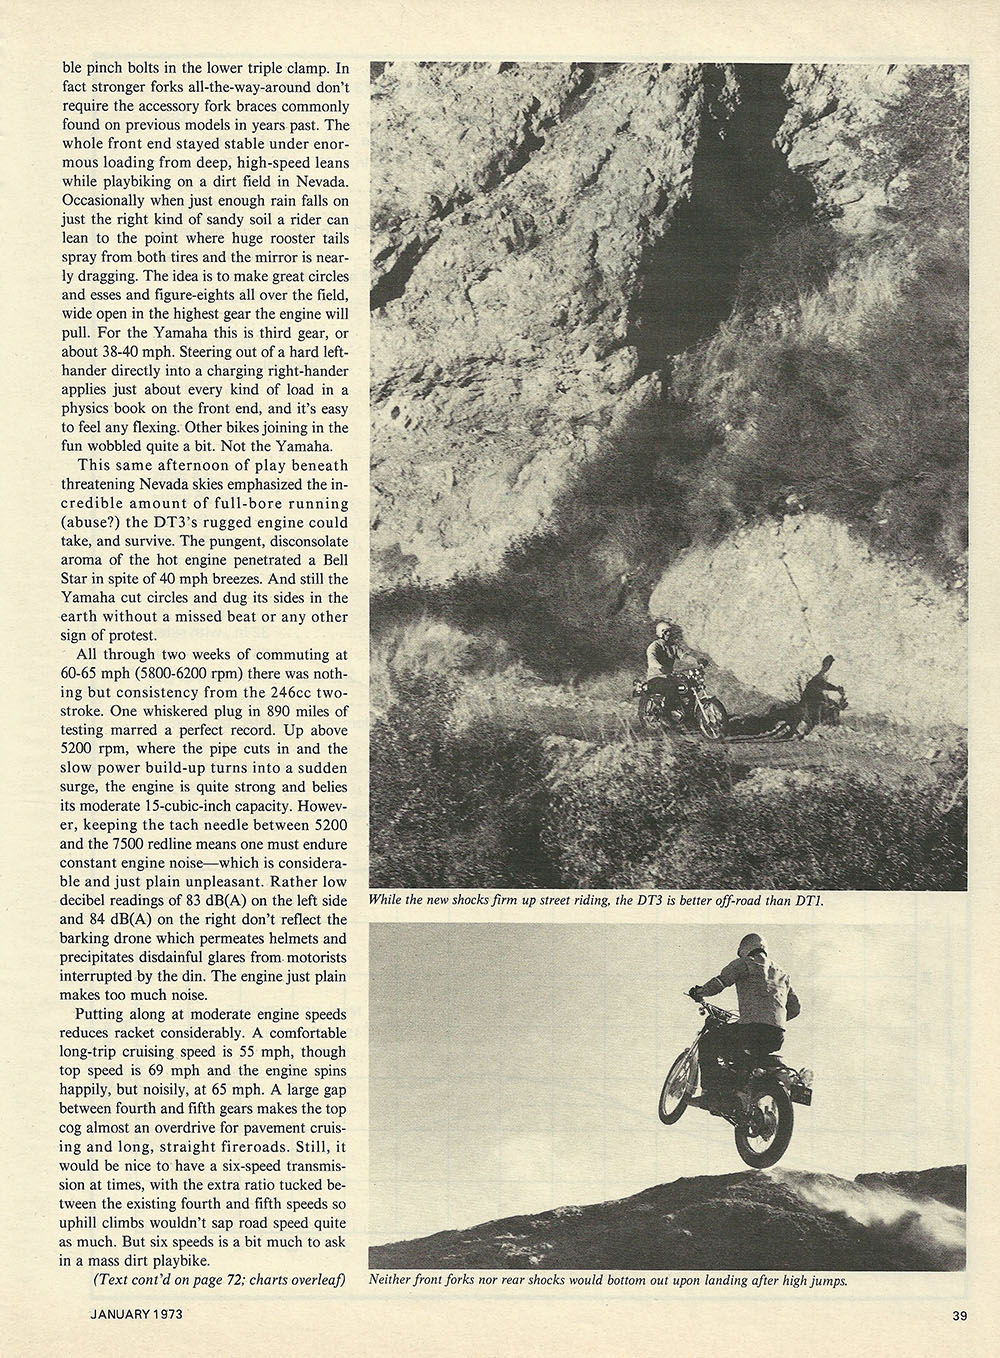 1973 Yamaha DT3 Enduro 250 road test p3.JPG